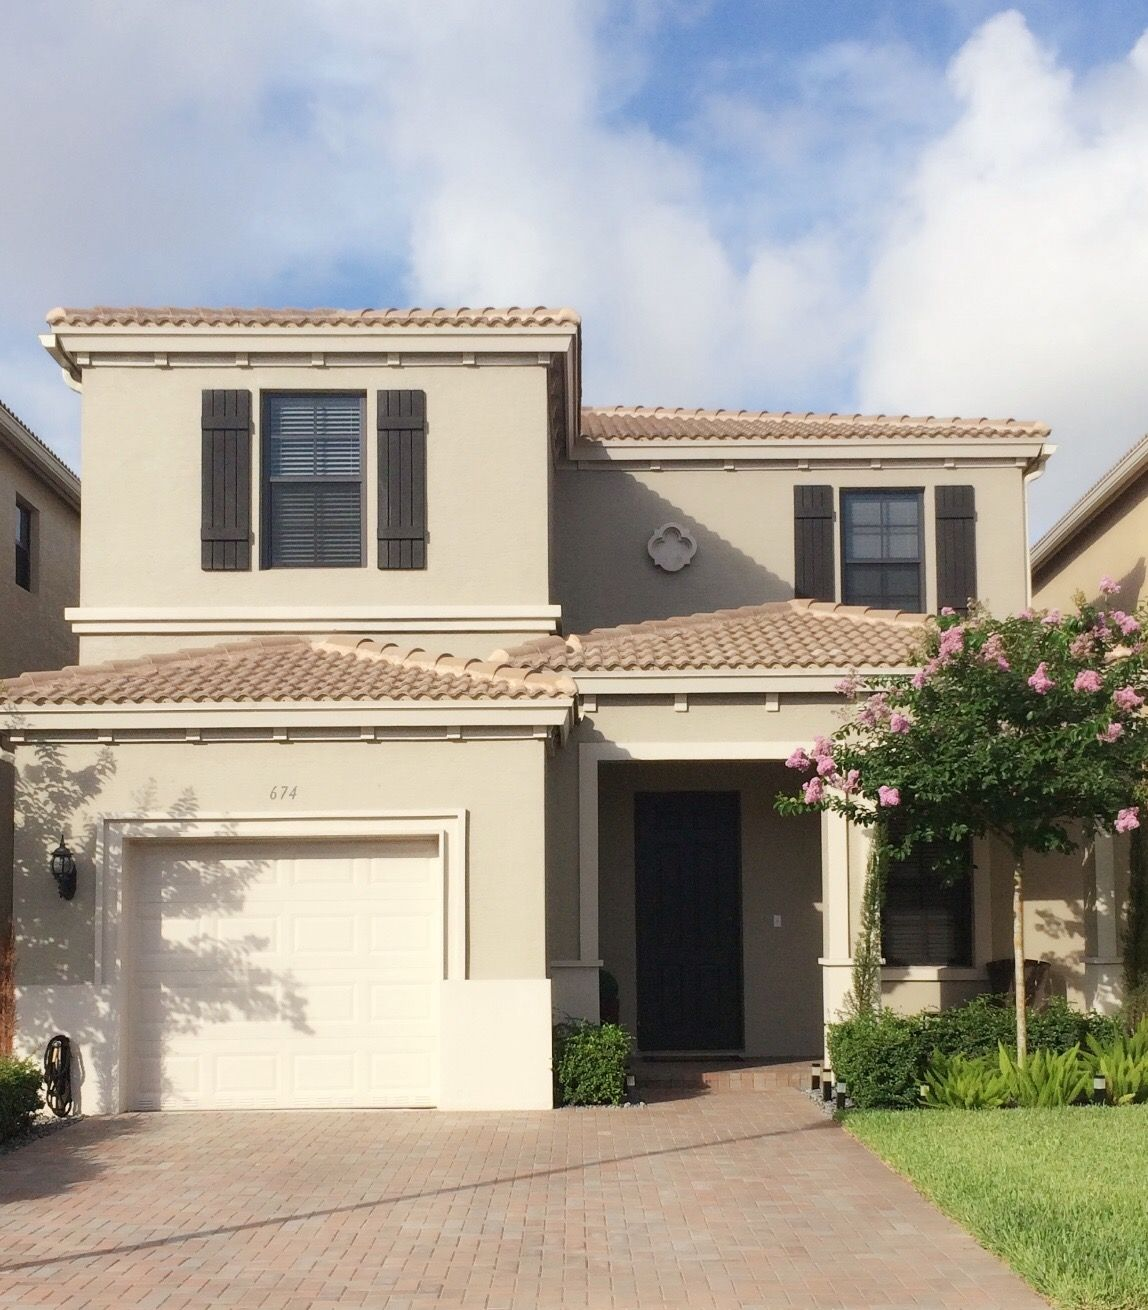 Taupe Exterior House Color Ideas: #HomeSweetHome #ModernMediterranean Home. Taupe Exterior